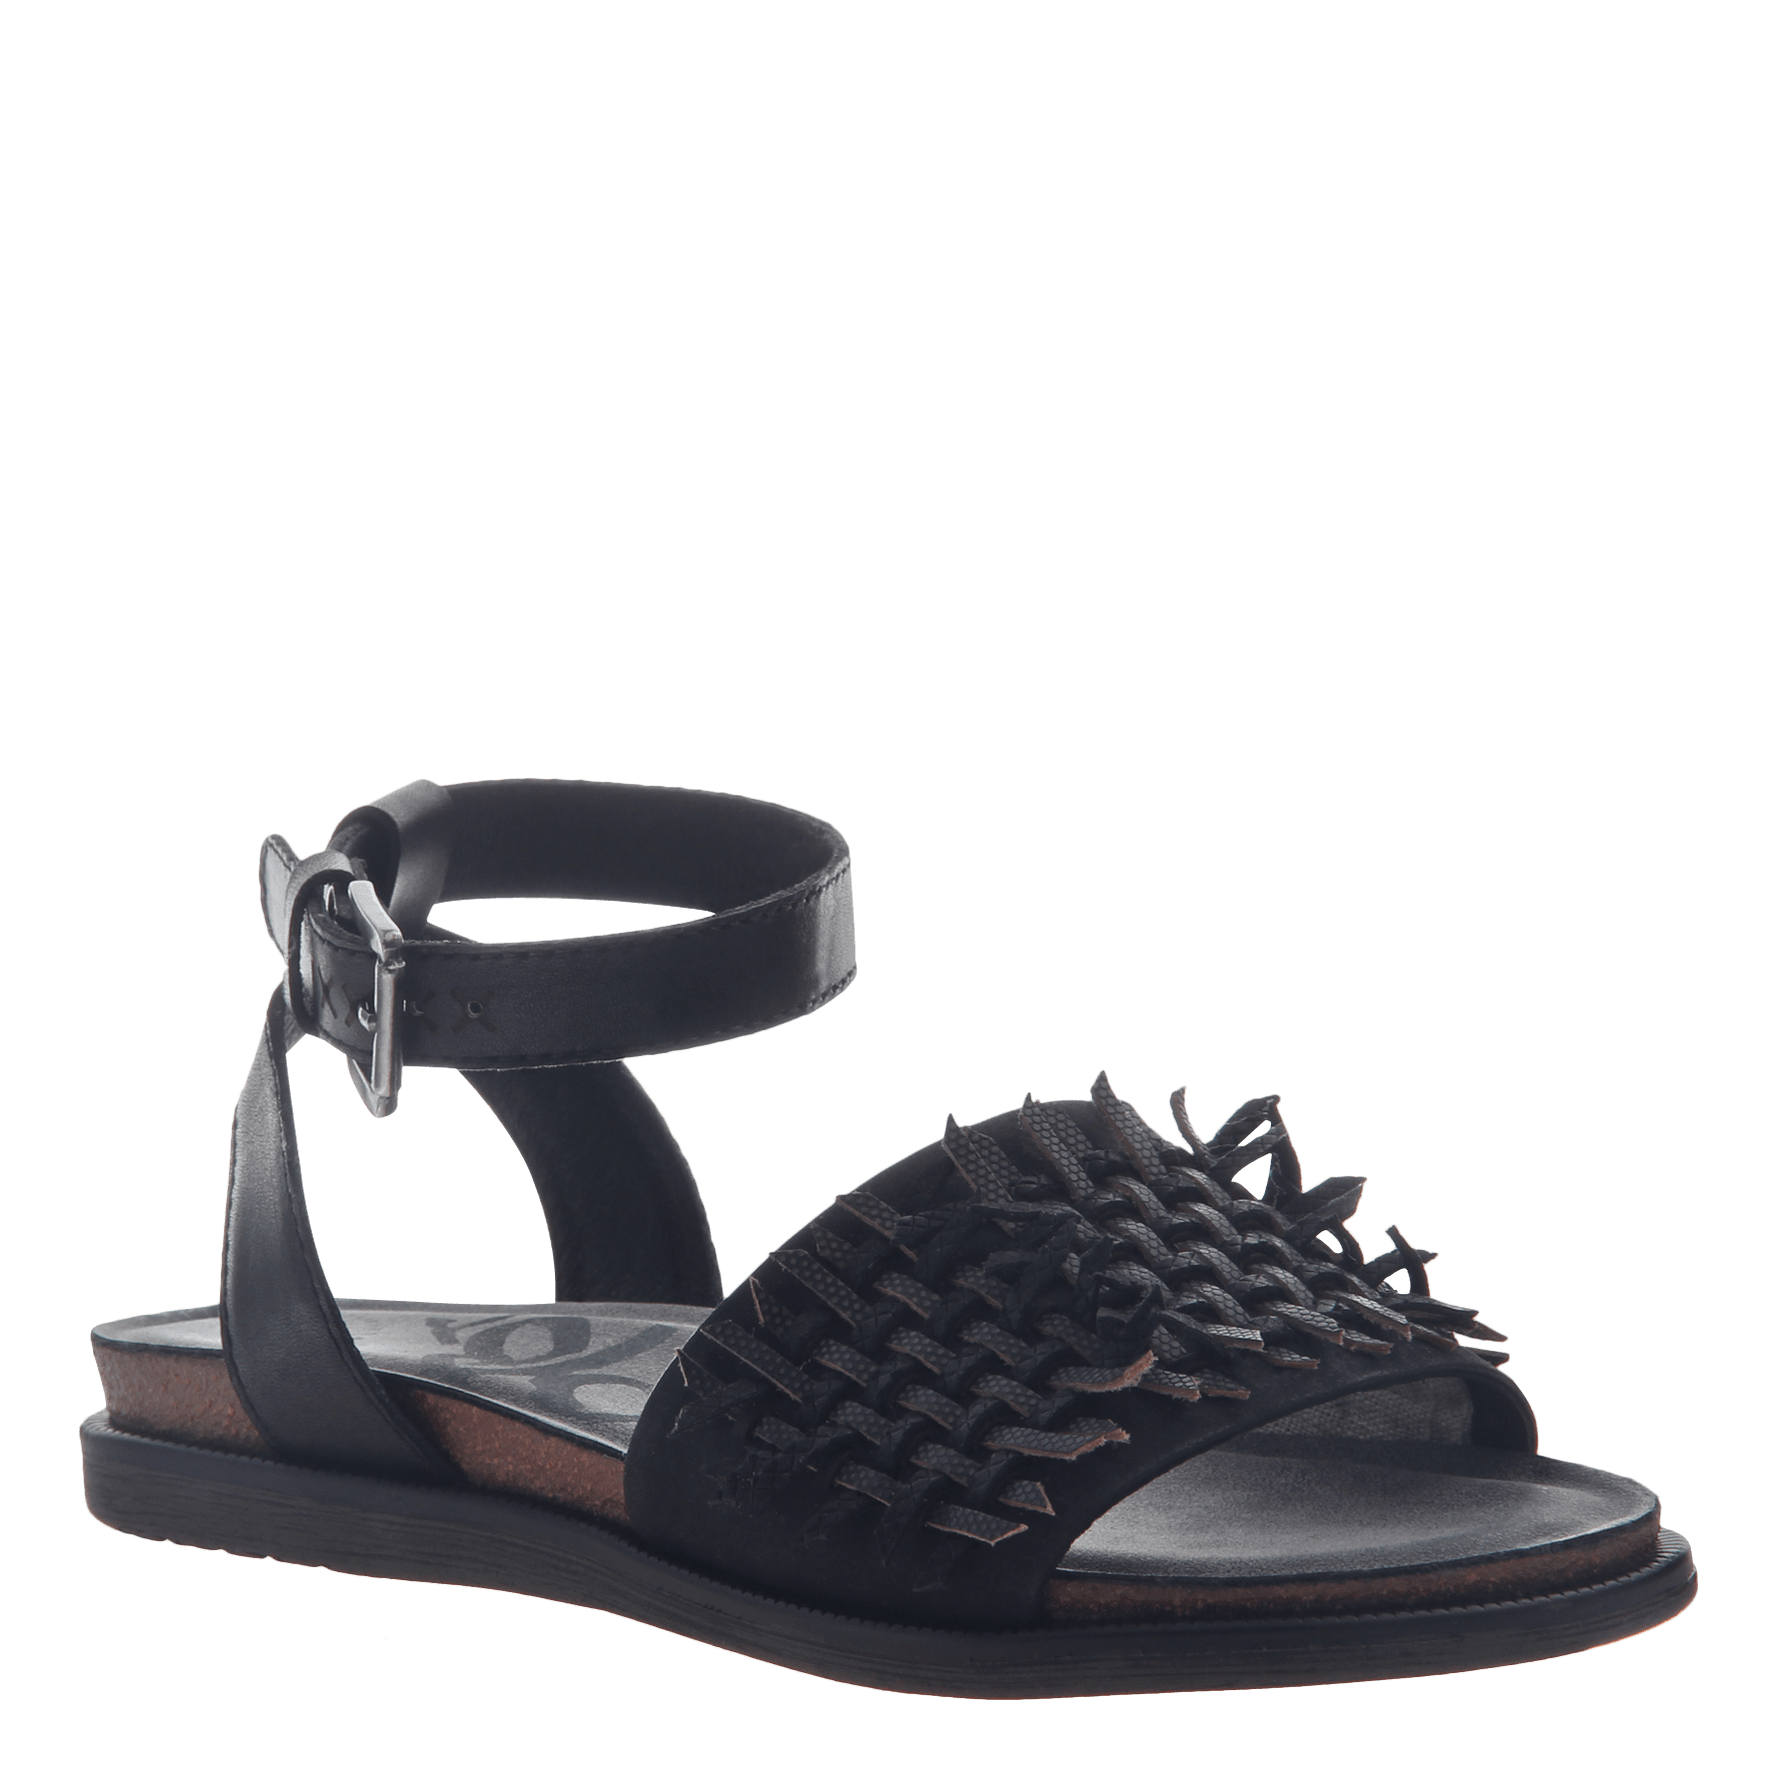 Womens flat sandal voyage in black